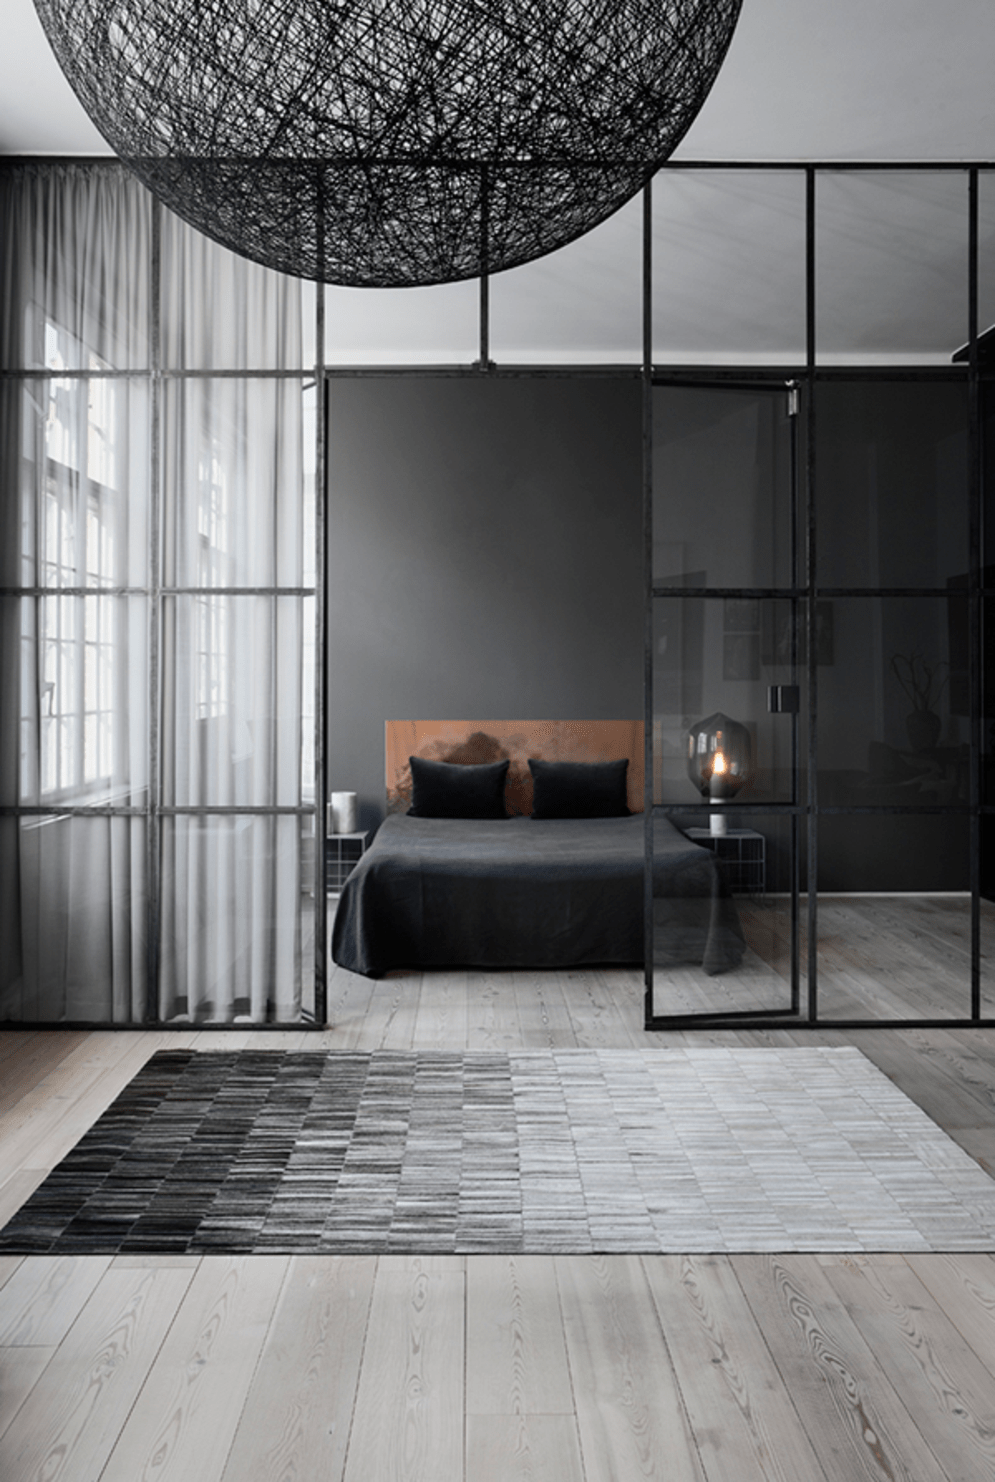 Limitless interior schemes with clever glass partition enlarging wide interior vibes Image 37